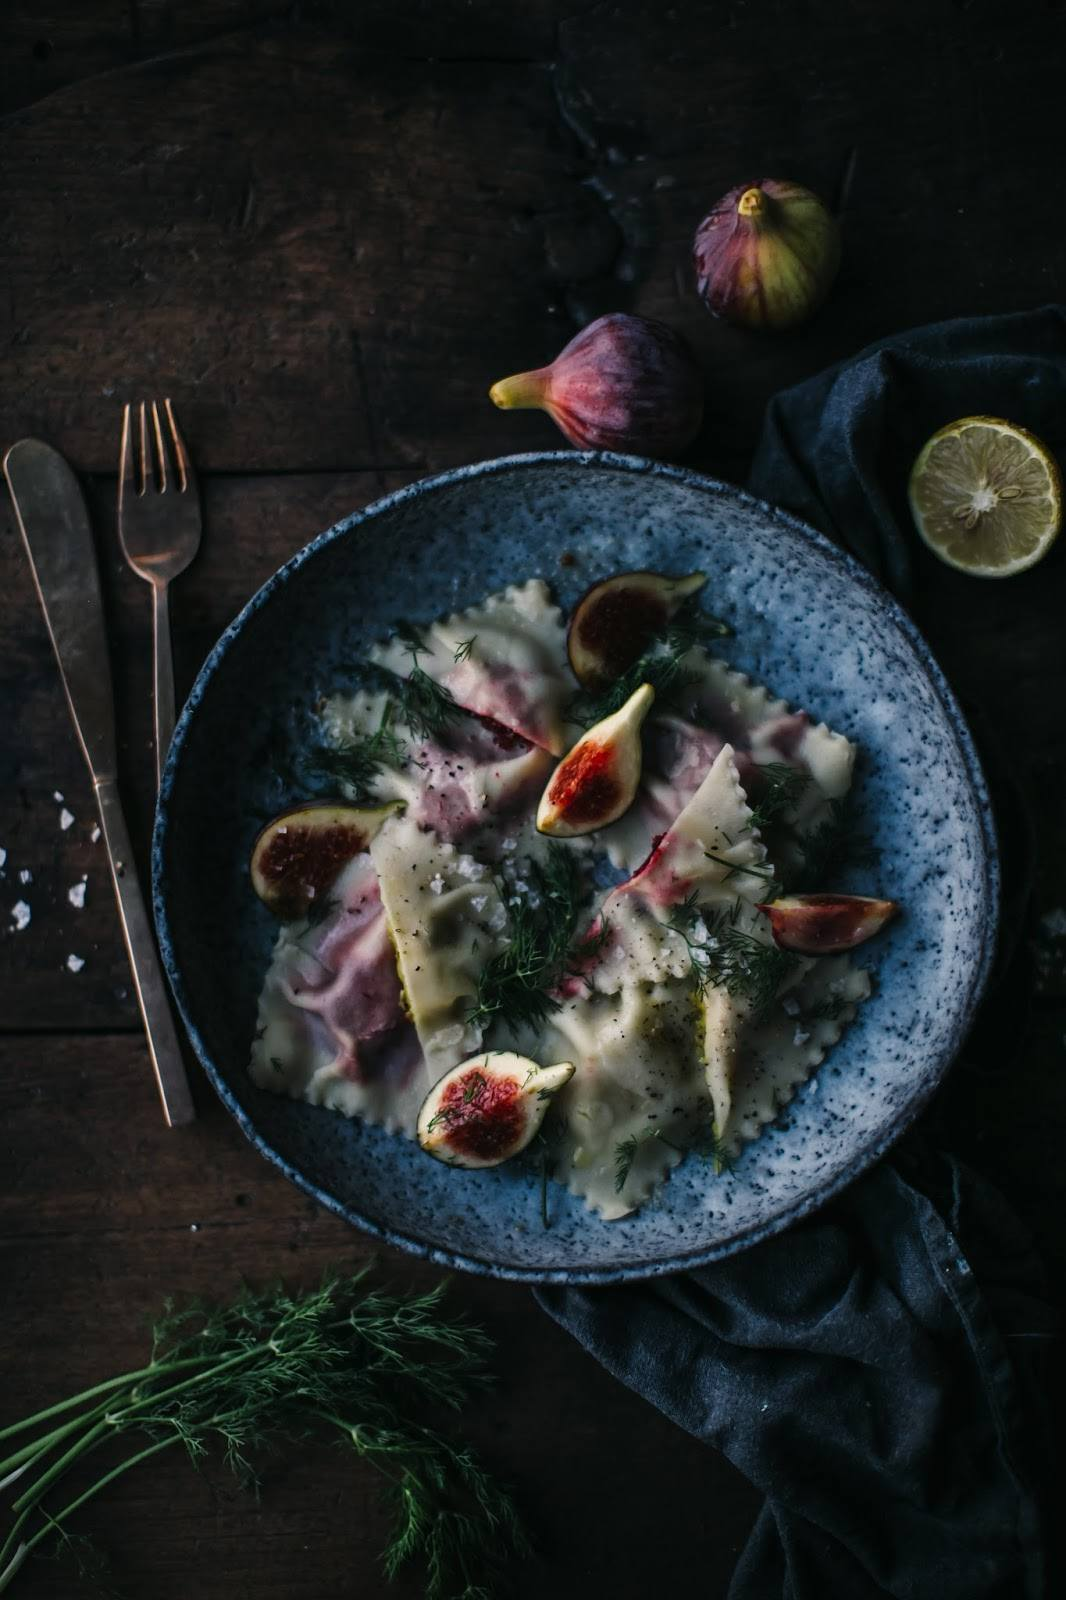 Gluten-free Ravioli filled with Red and Yellow Beetroot and delicious Cheese from Kaltbach